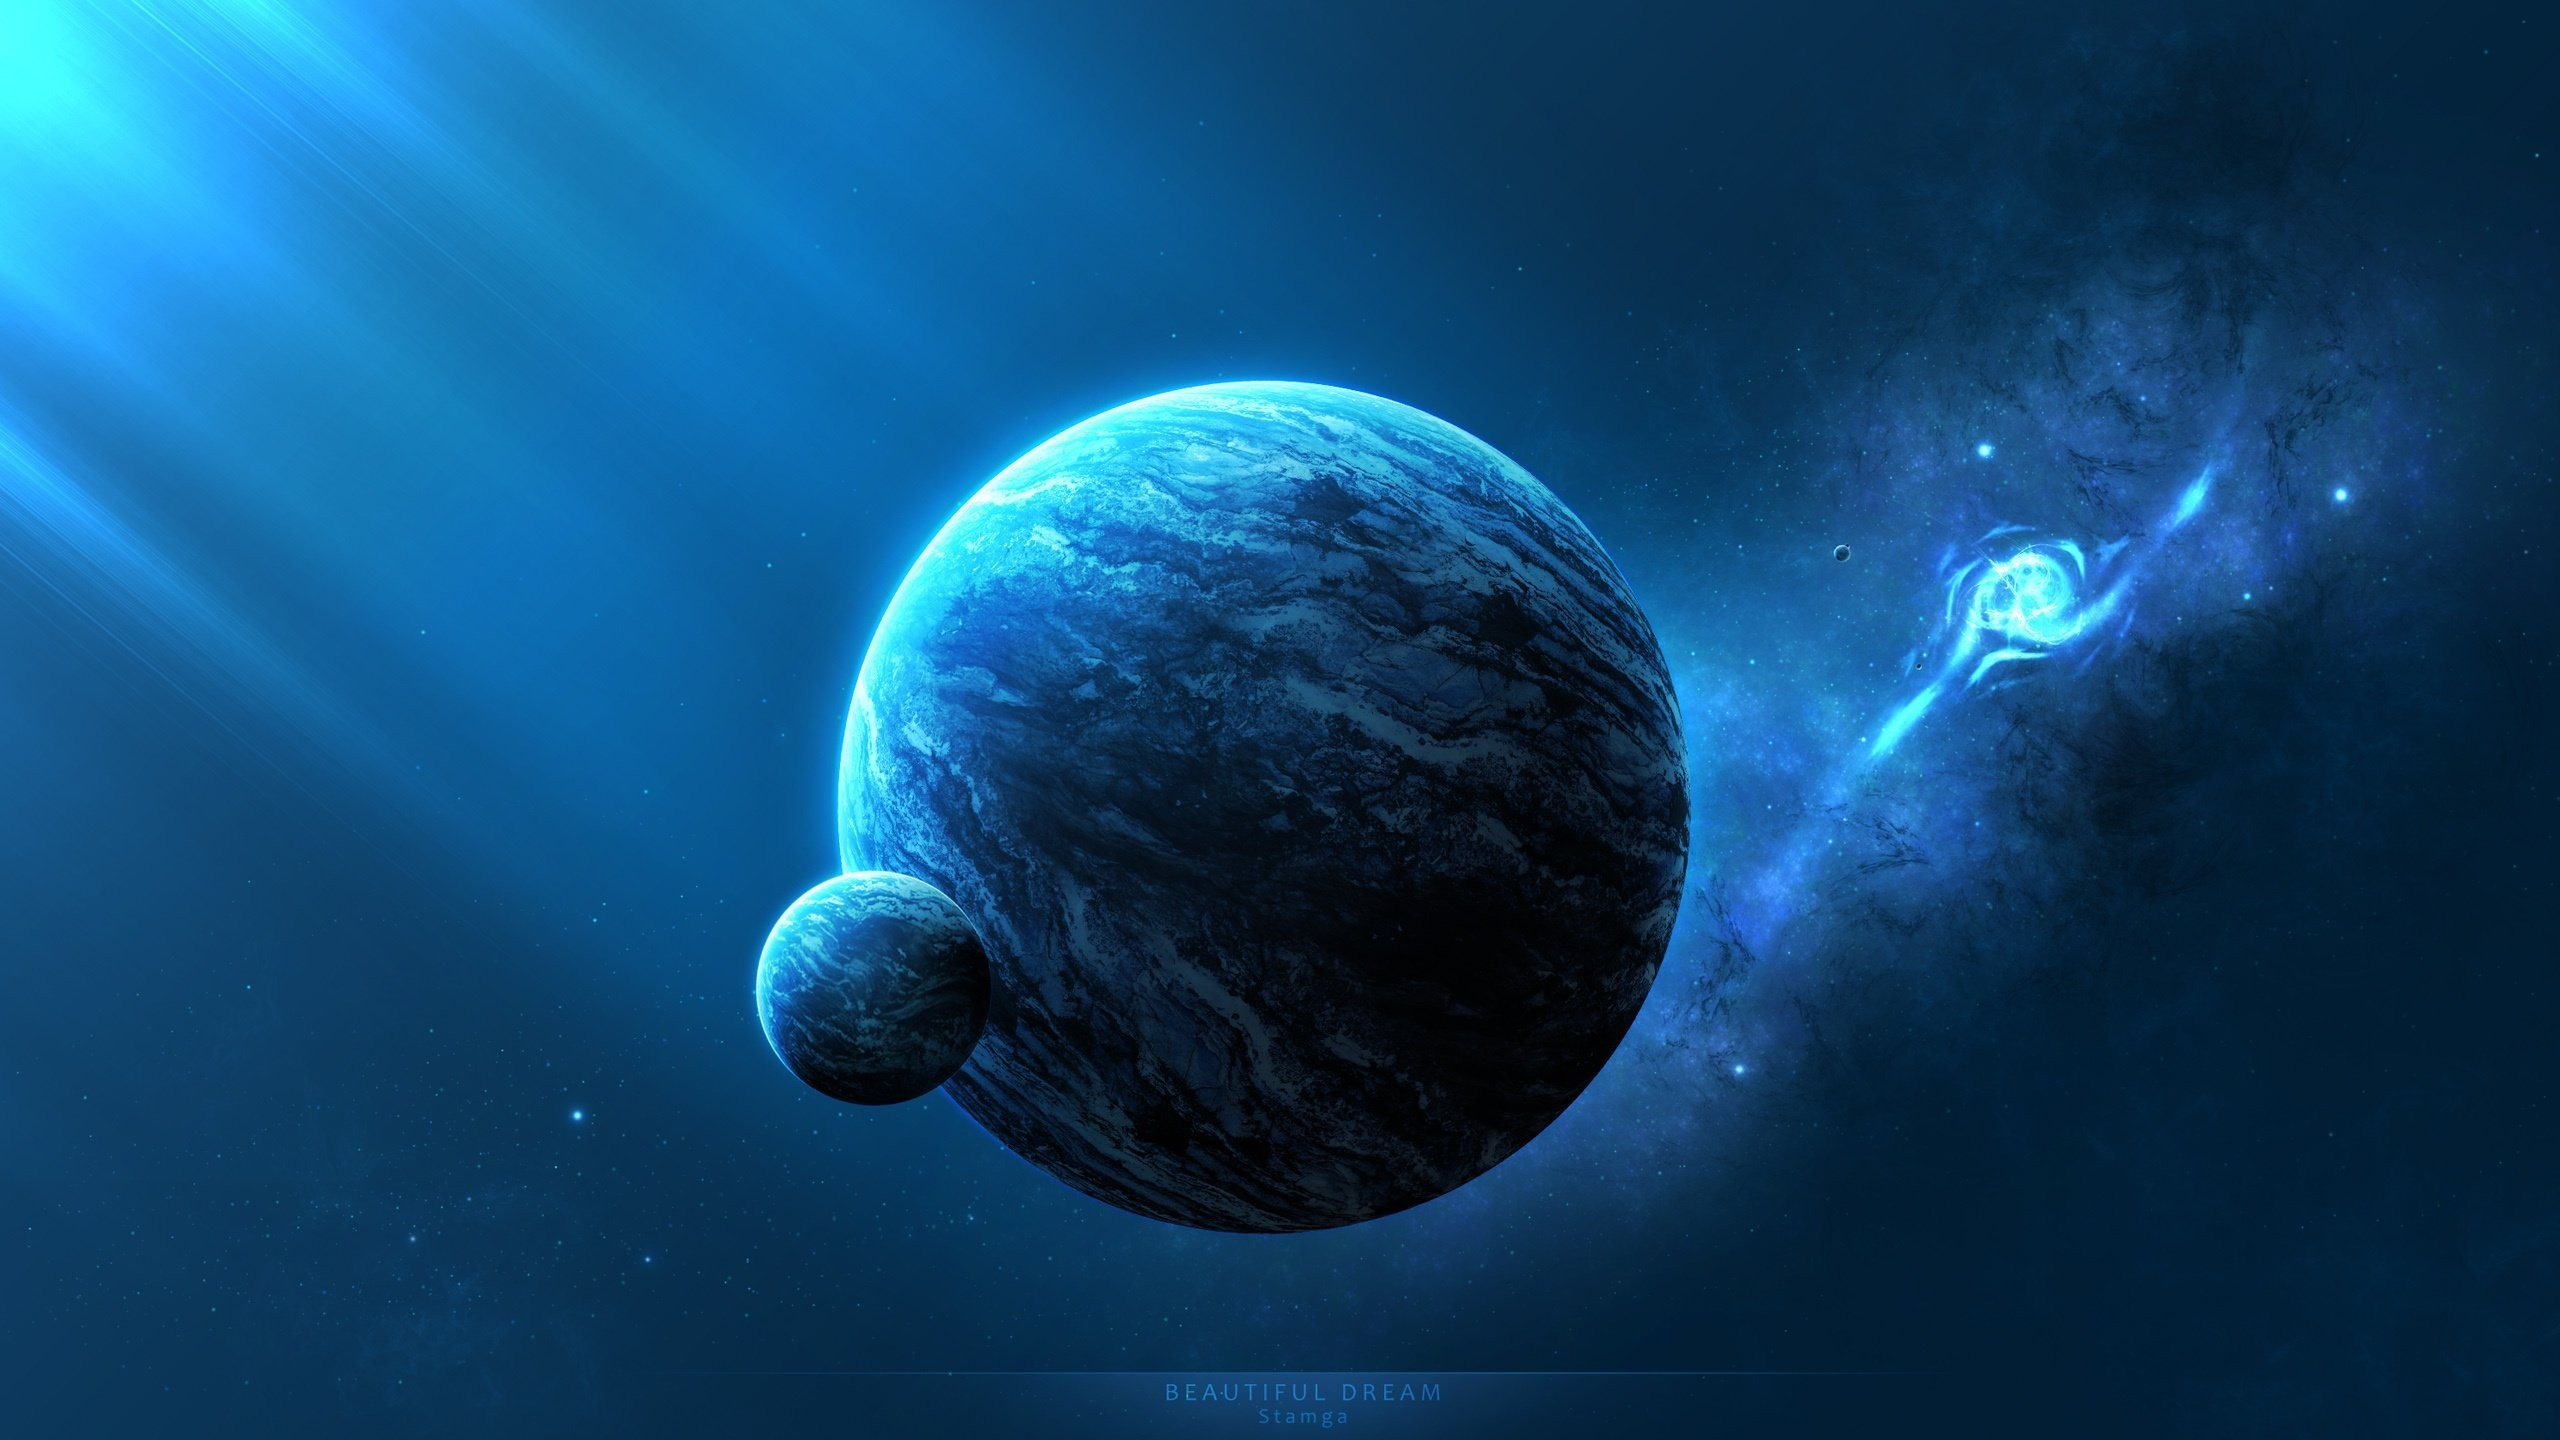 space hd wallpapers 1080p,planet,outer space,astronomical object,earth,atmosphere